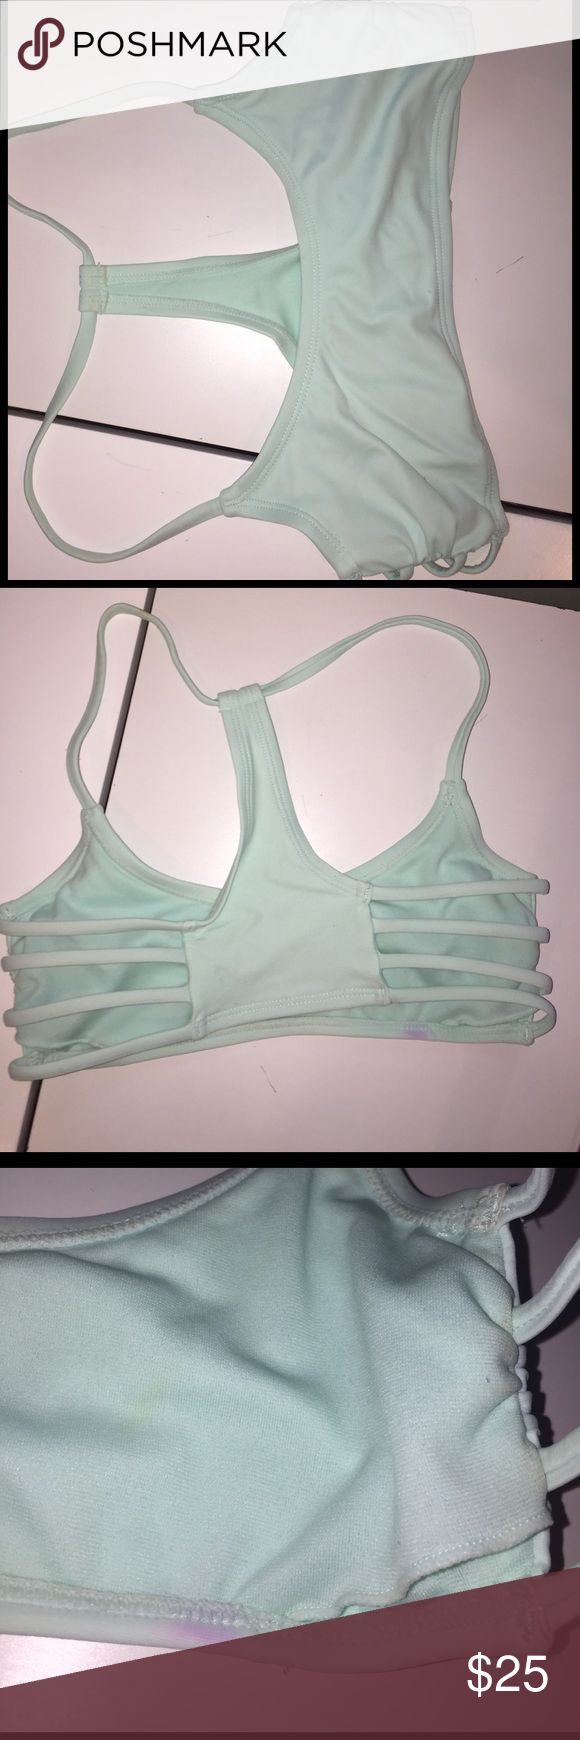 Mint bikini XS Mint bikini from target. Has an insert for pads however does not have any in right now. In good condition, worn a couple of times last summer but now it is too small! Swim Bikinis